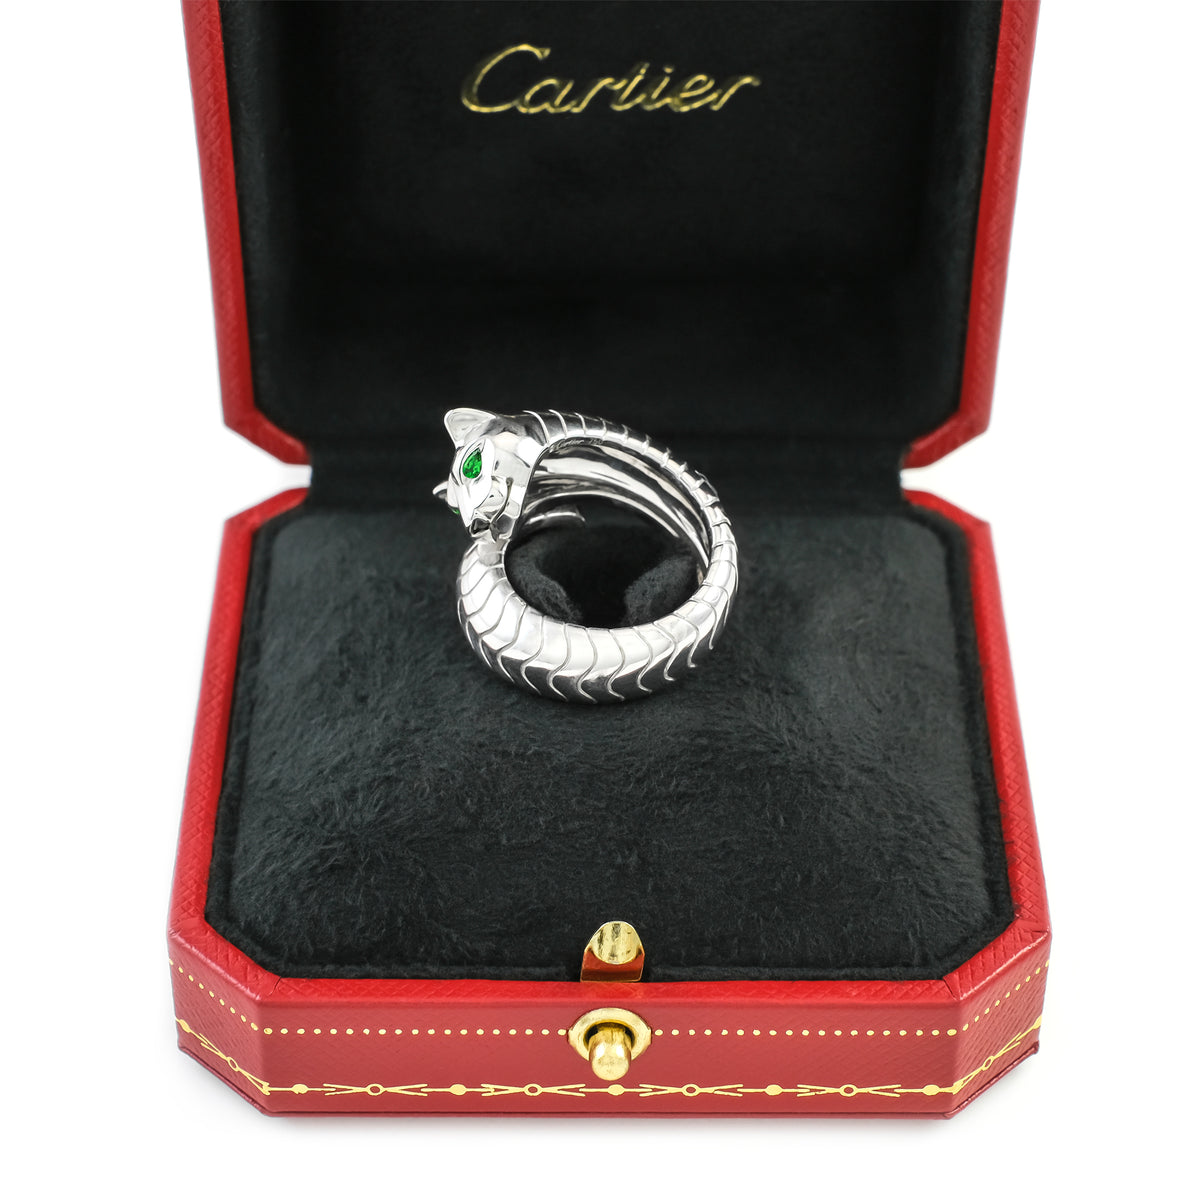 Cartier 18ct White Gold Panthere Ring